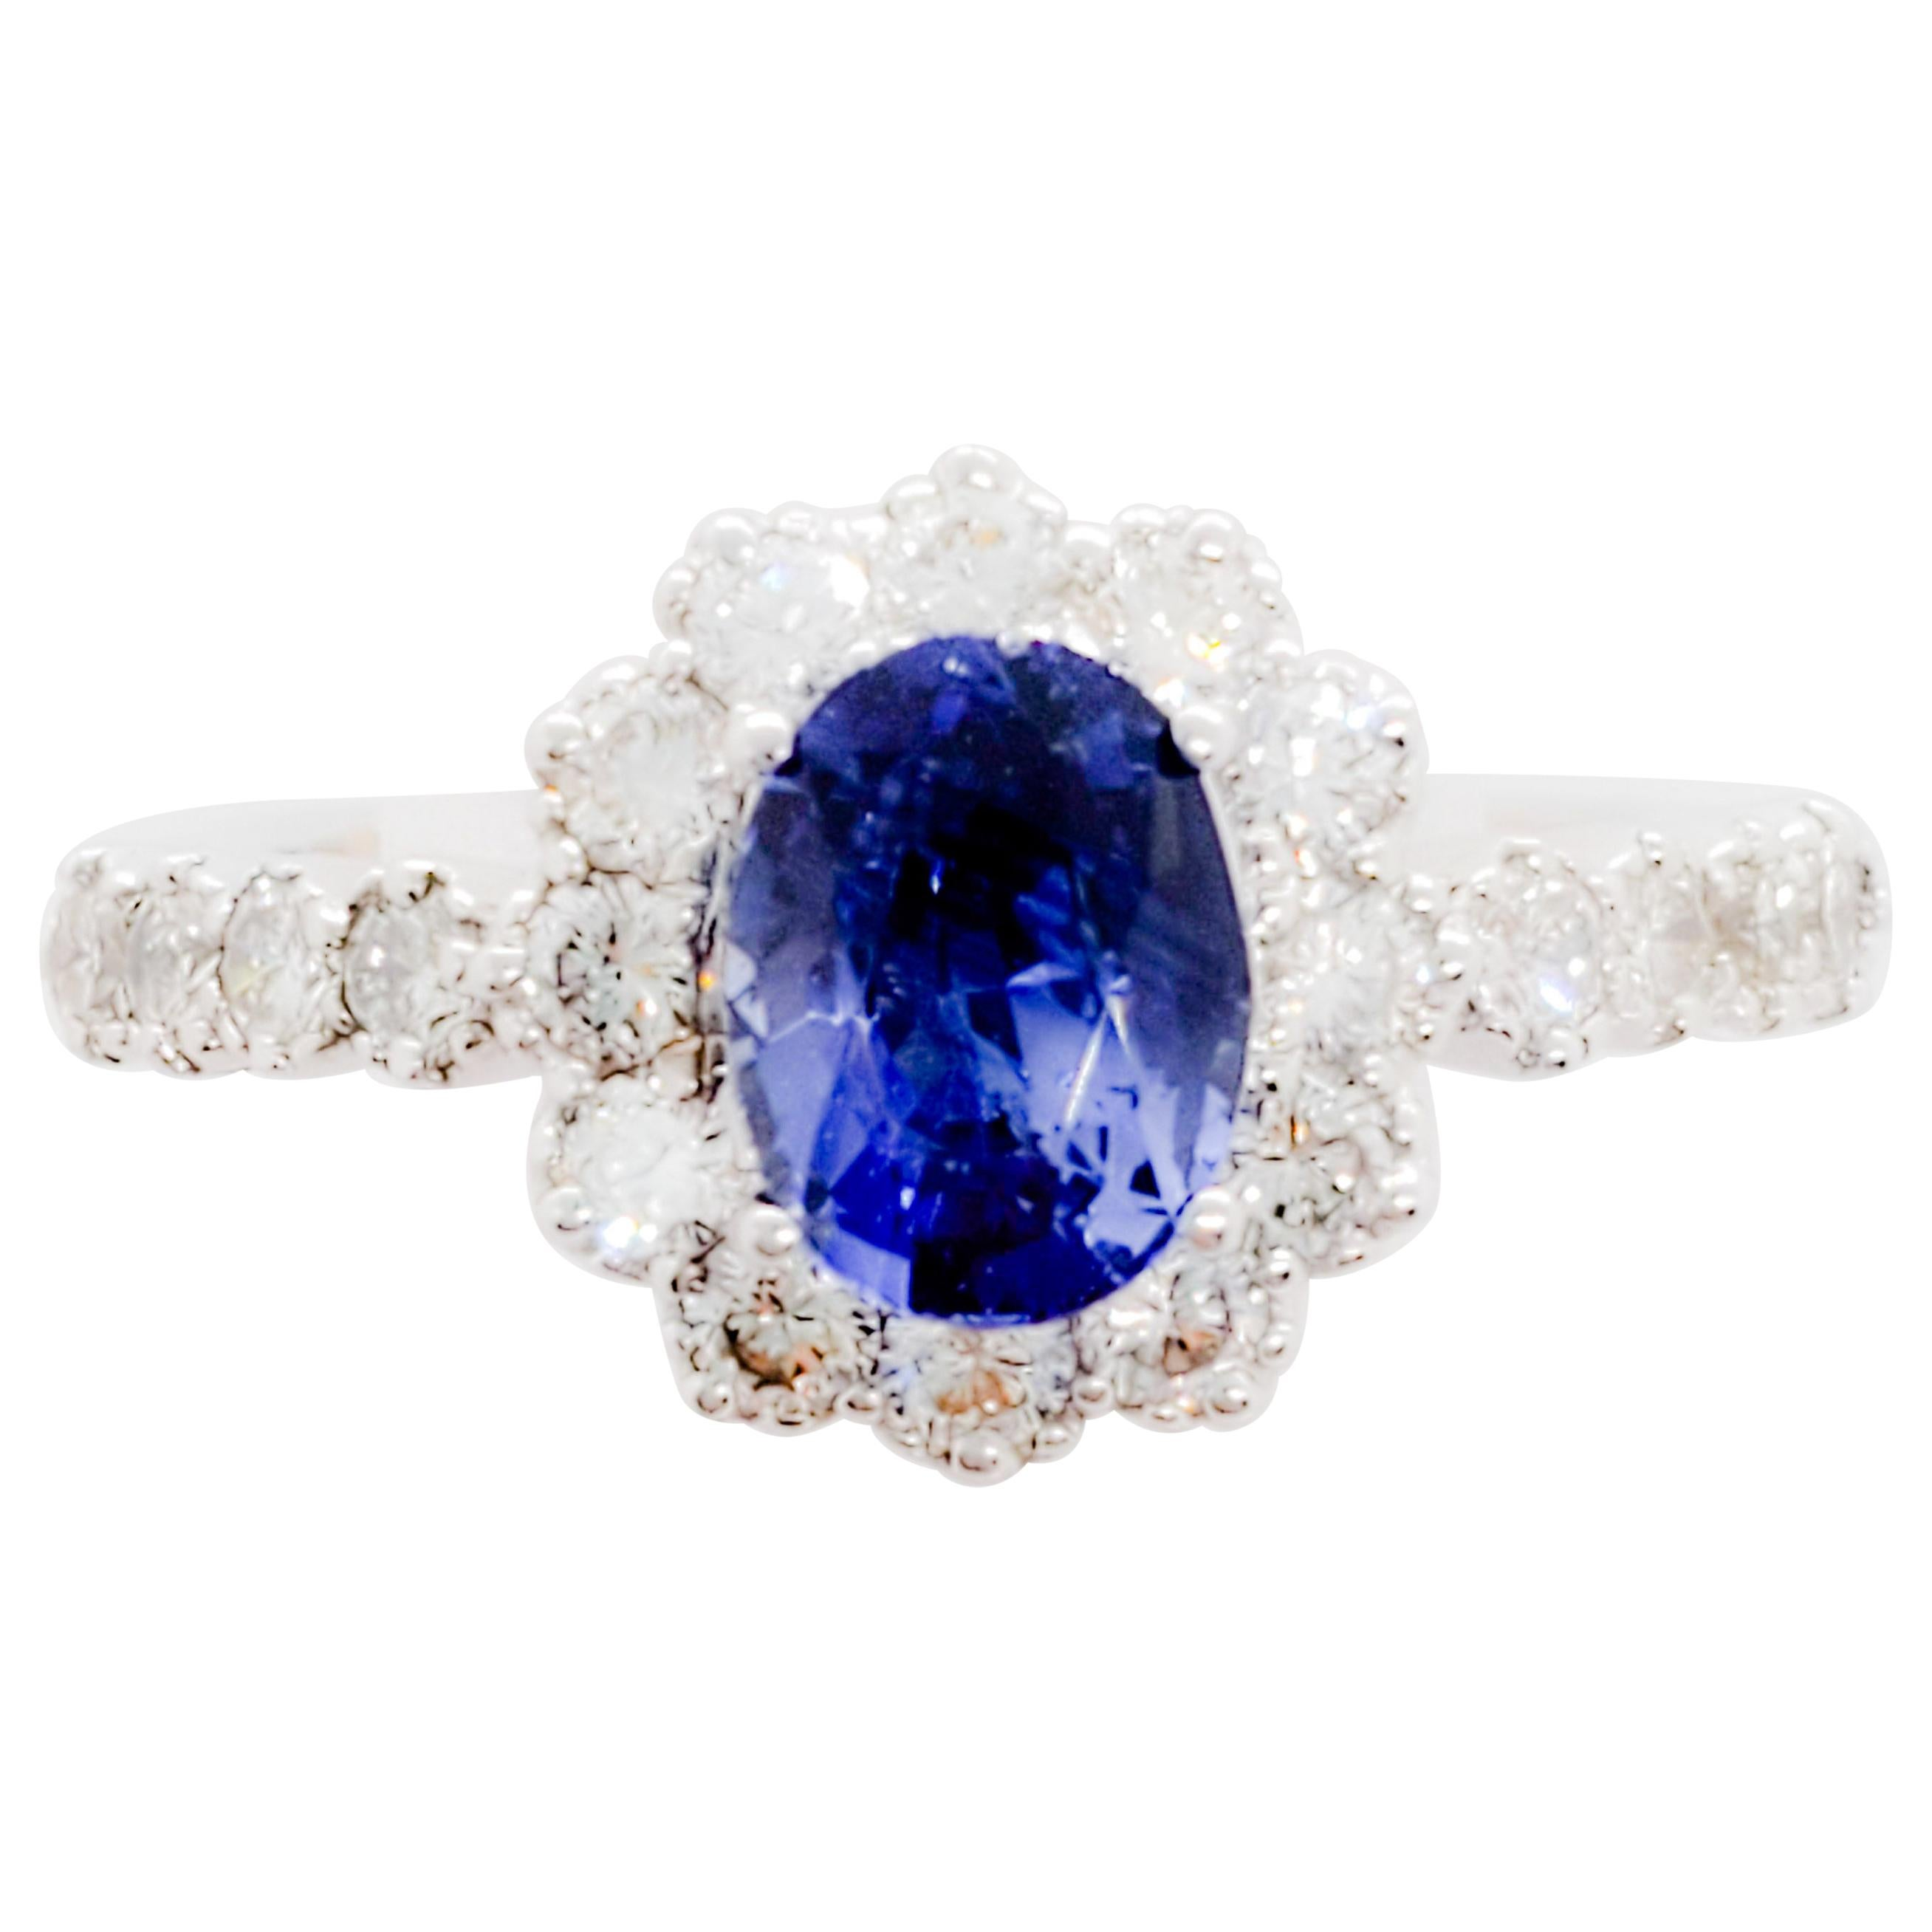 Blue Sapphire Oval and White Diamond Ring in 18 Karat White Gold